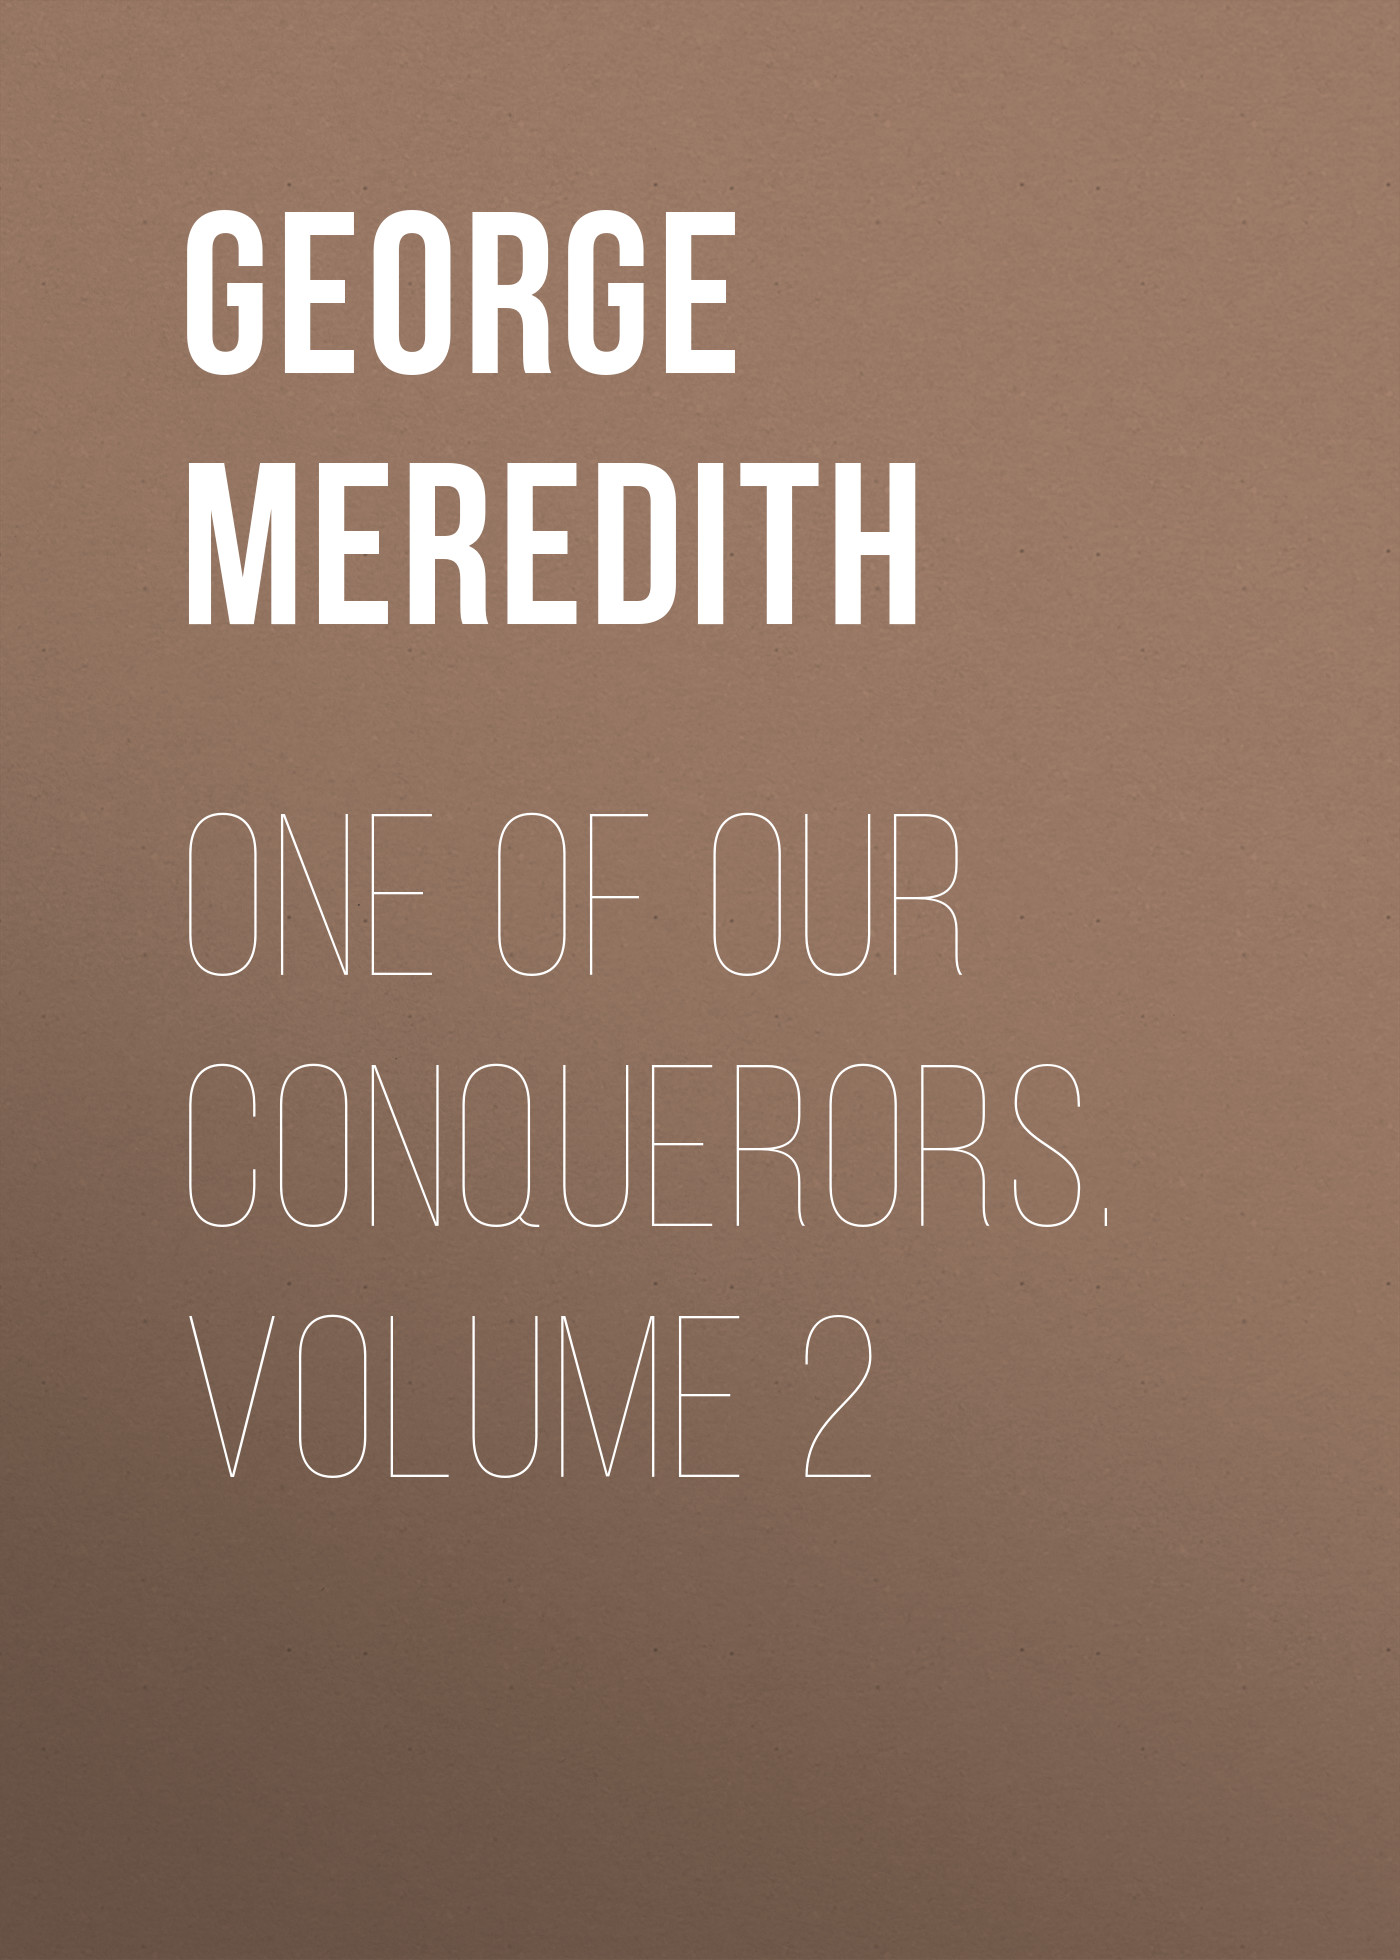 цена George Meredith One of Our Conquerors. Volume 2 в интернет-магазинах